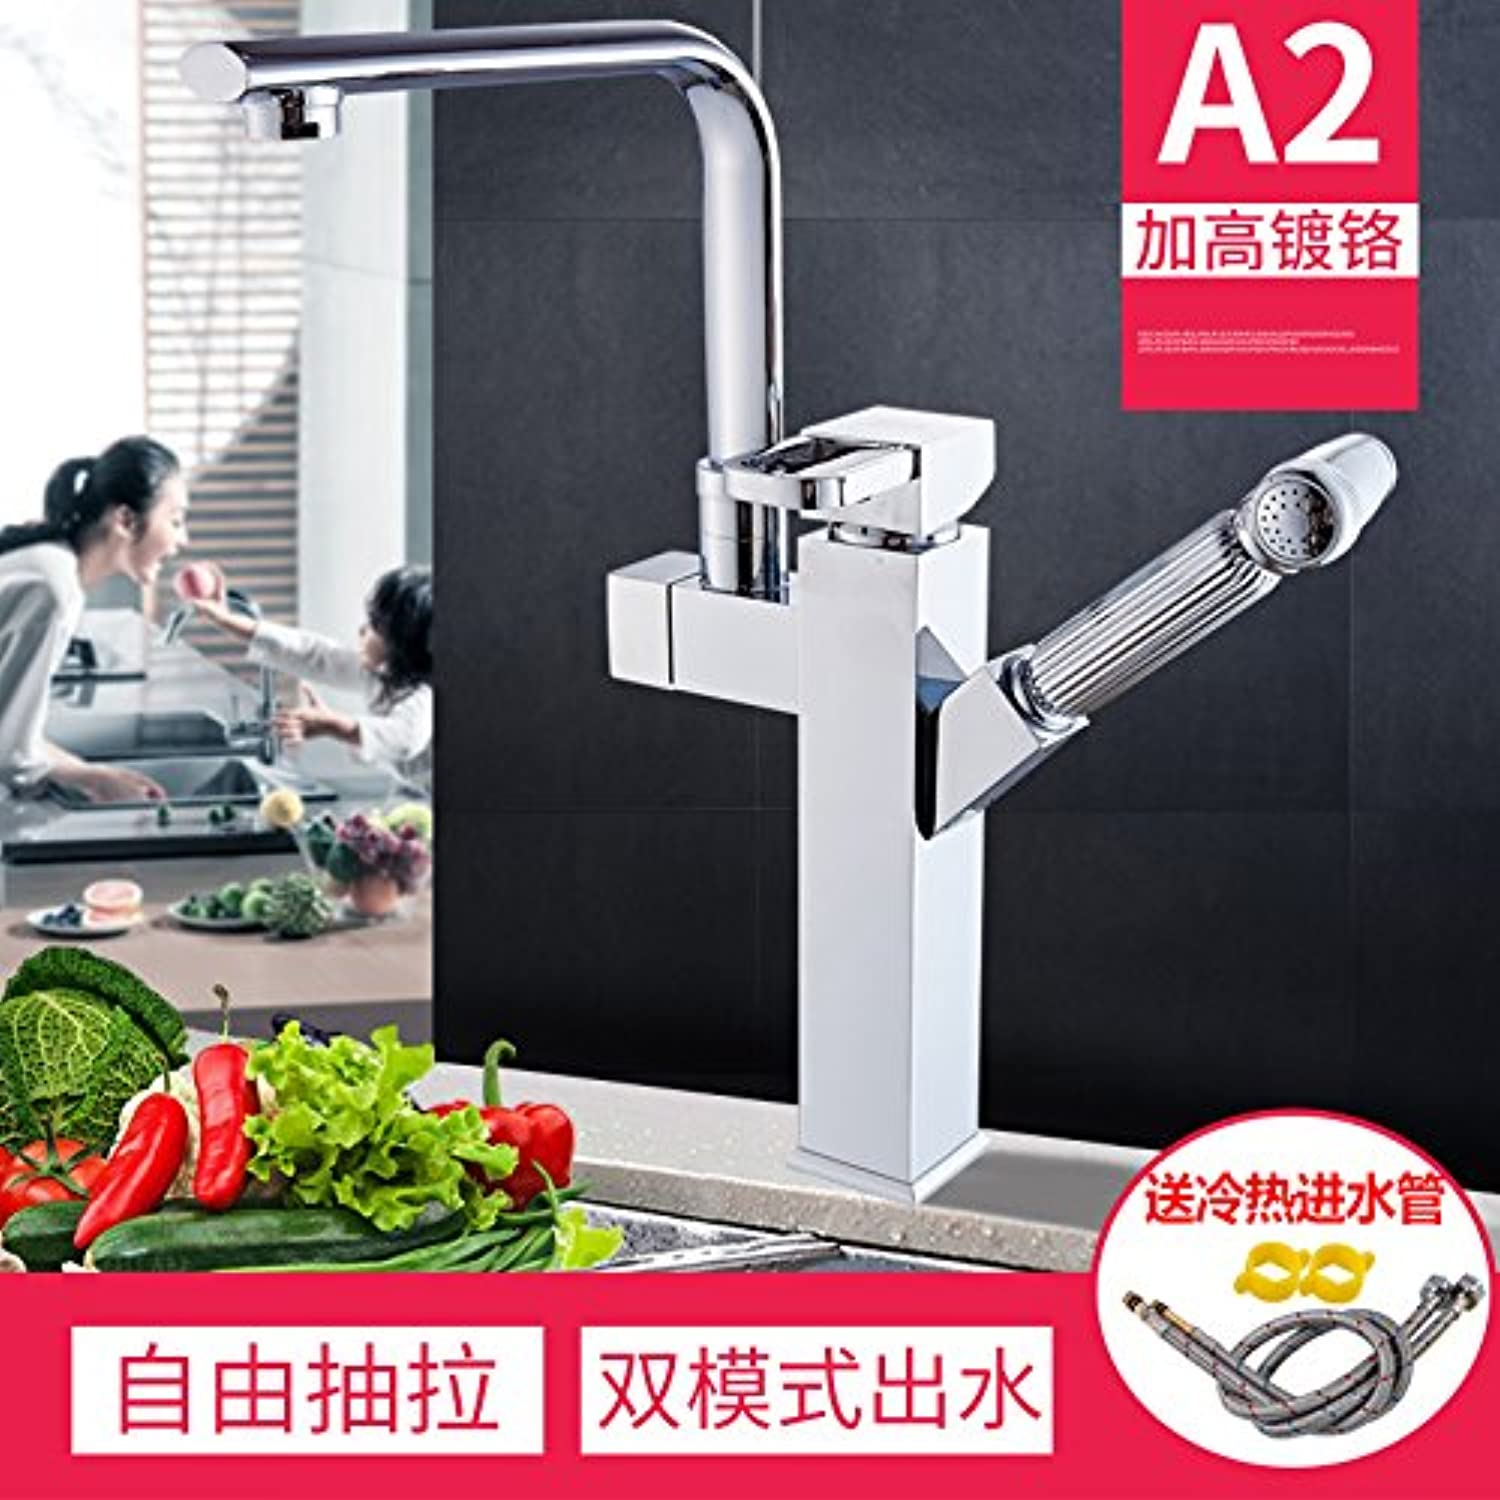 Lpophy Bathroom Sink Mixer Taps Faucet Bath Waterfall Cold and Hot Water Tap for Washroom Bathroom and Kitchen Pull-Type Hot and Cold All-Copper Universal redating Telescopic Drawing B3 Chrome